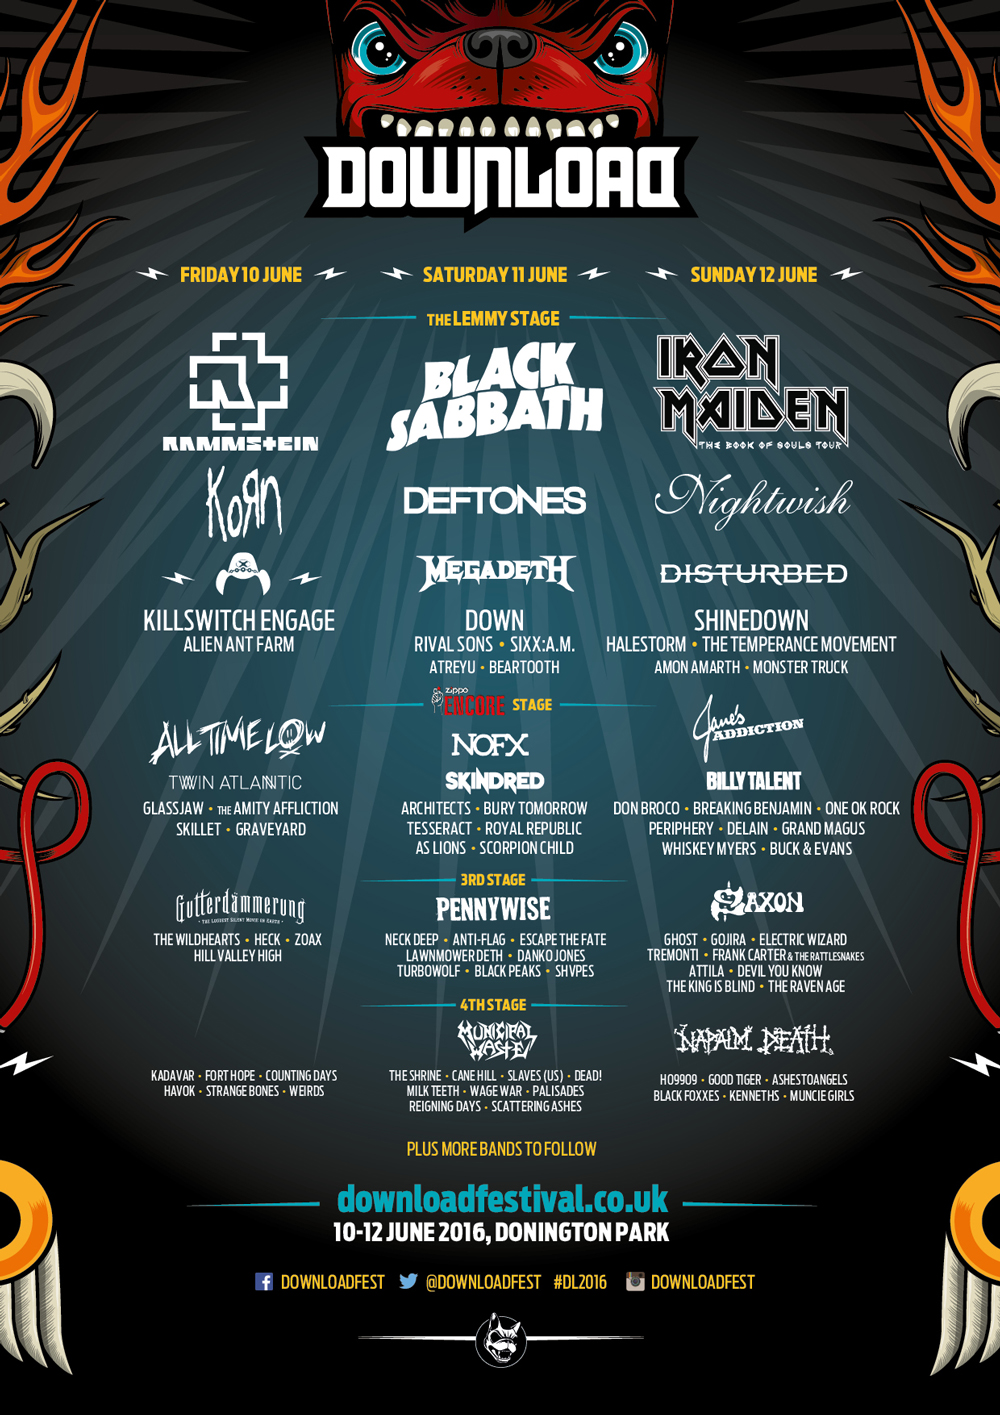 Download Announces 2016 Lineup Featuring Ghost, Electric Wizard And